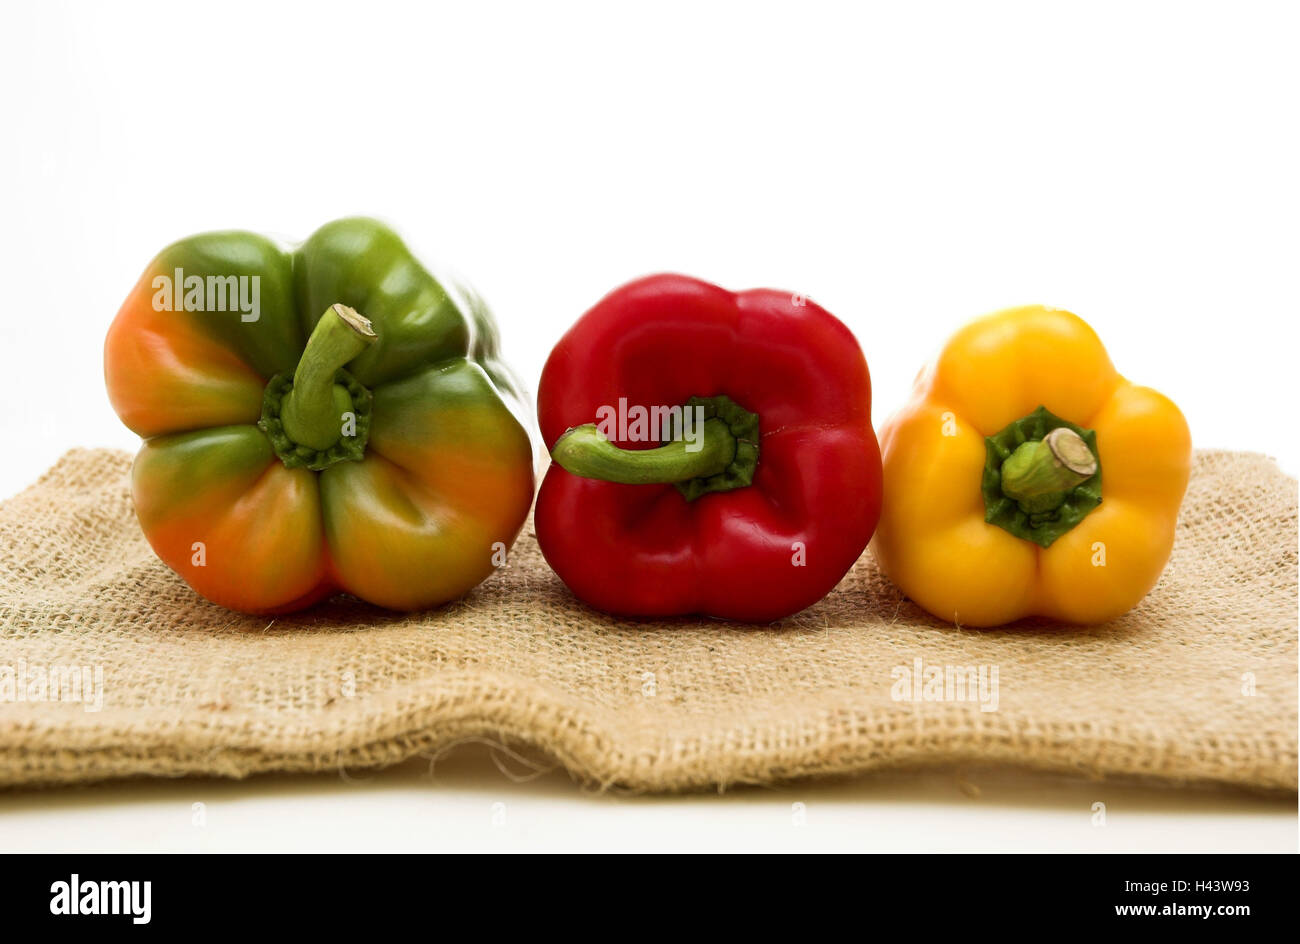 Paprika, peppers, three, vegetables, rich in vitamins, healthy, paprika sorts, brightly, different, freshly, food, - Stock Image